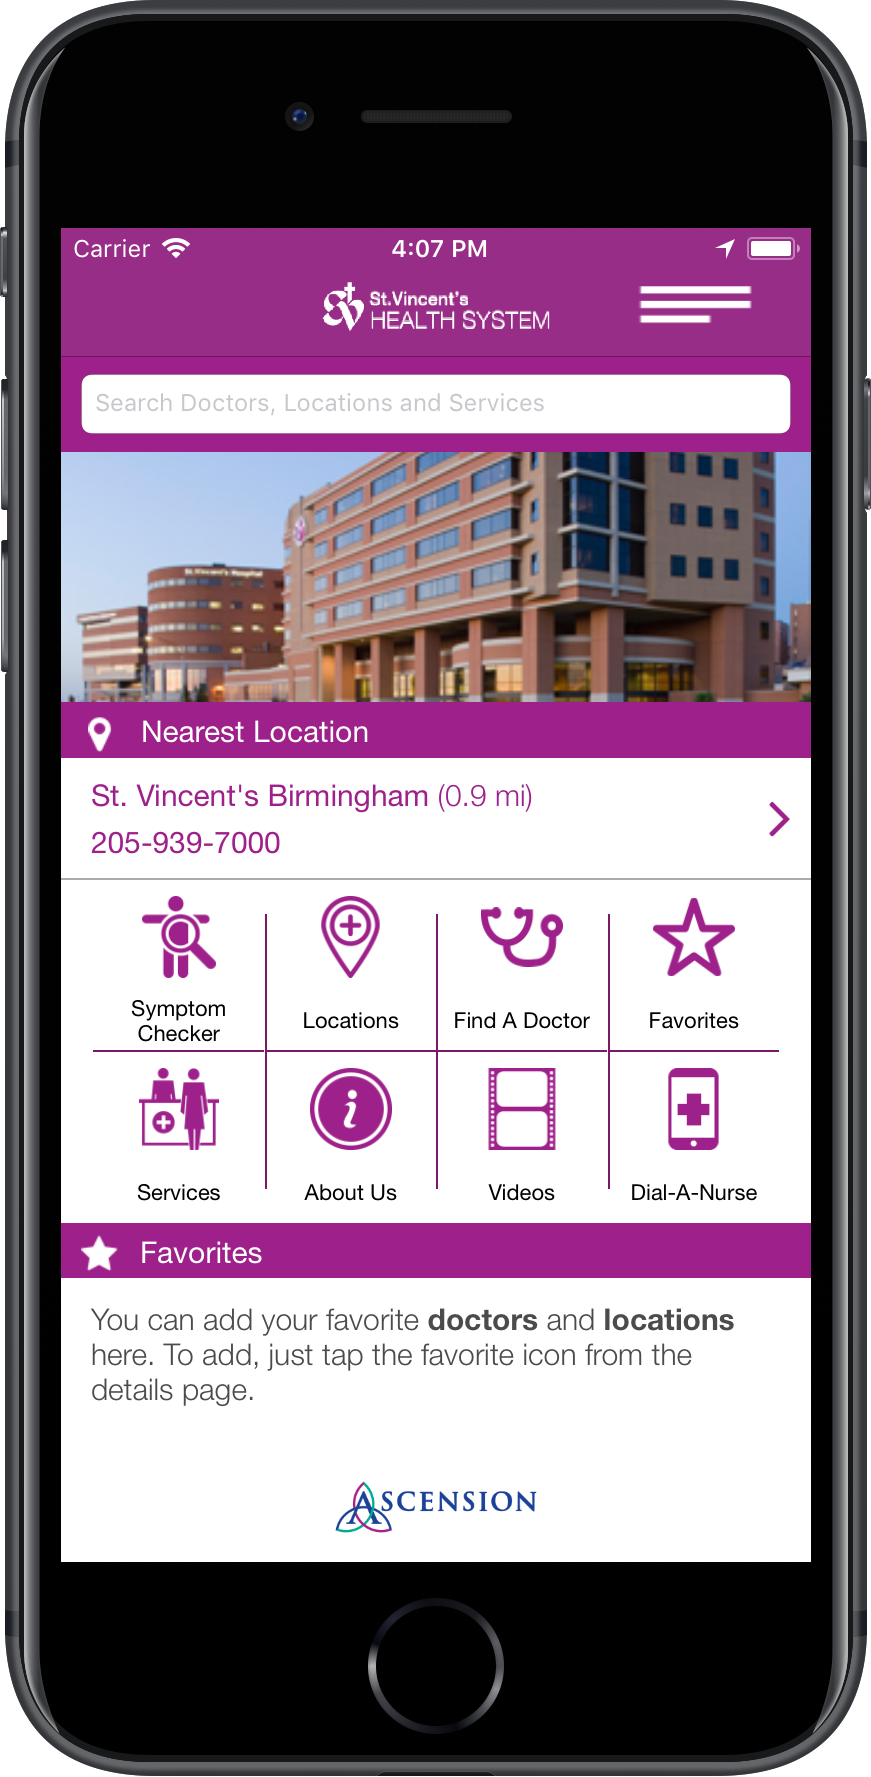 Ascension Hospital iOS & Android App